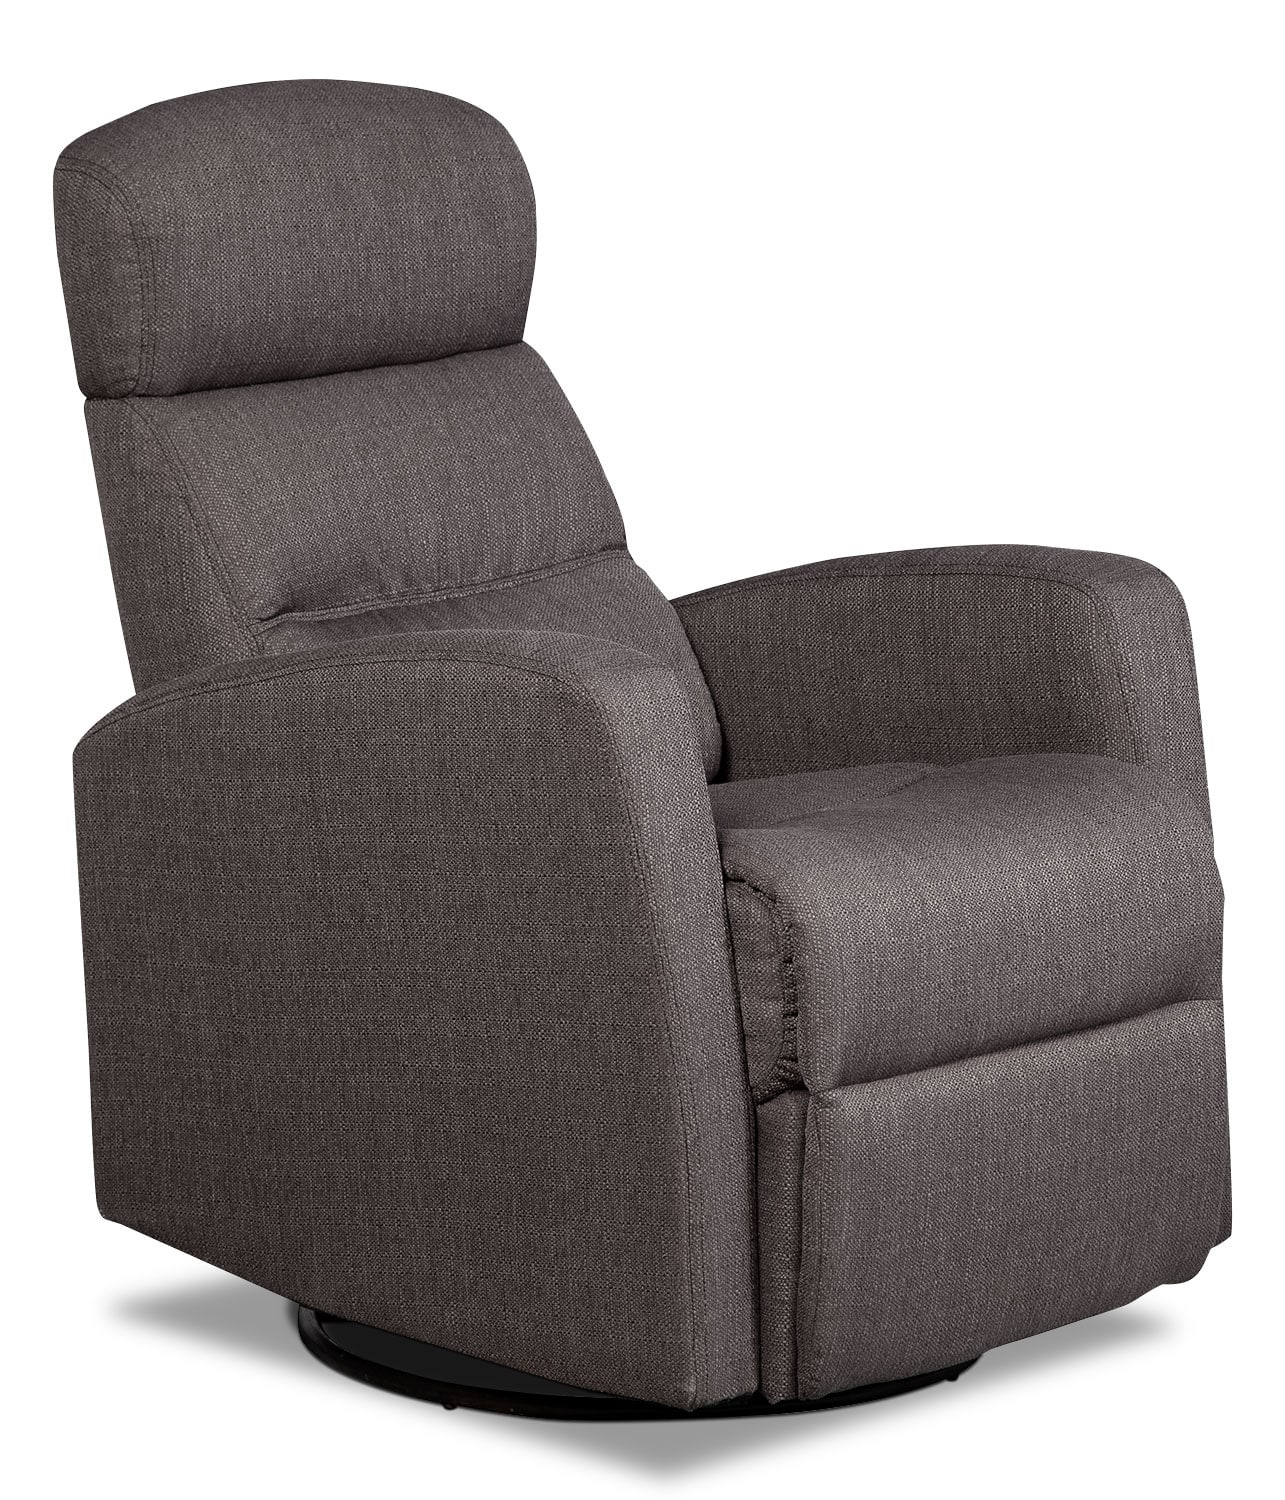 Gray Recliner Chair Penny Linen Look Fabric Swivel Rocker Reclining Chair